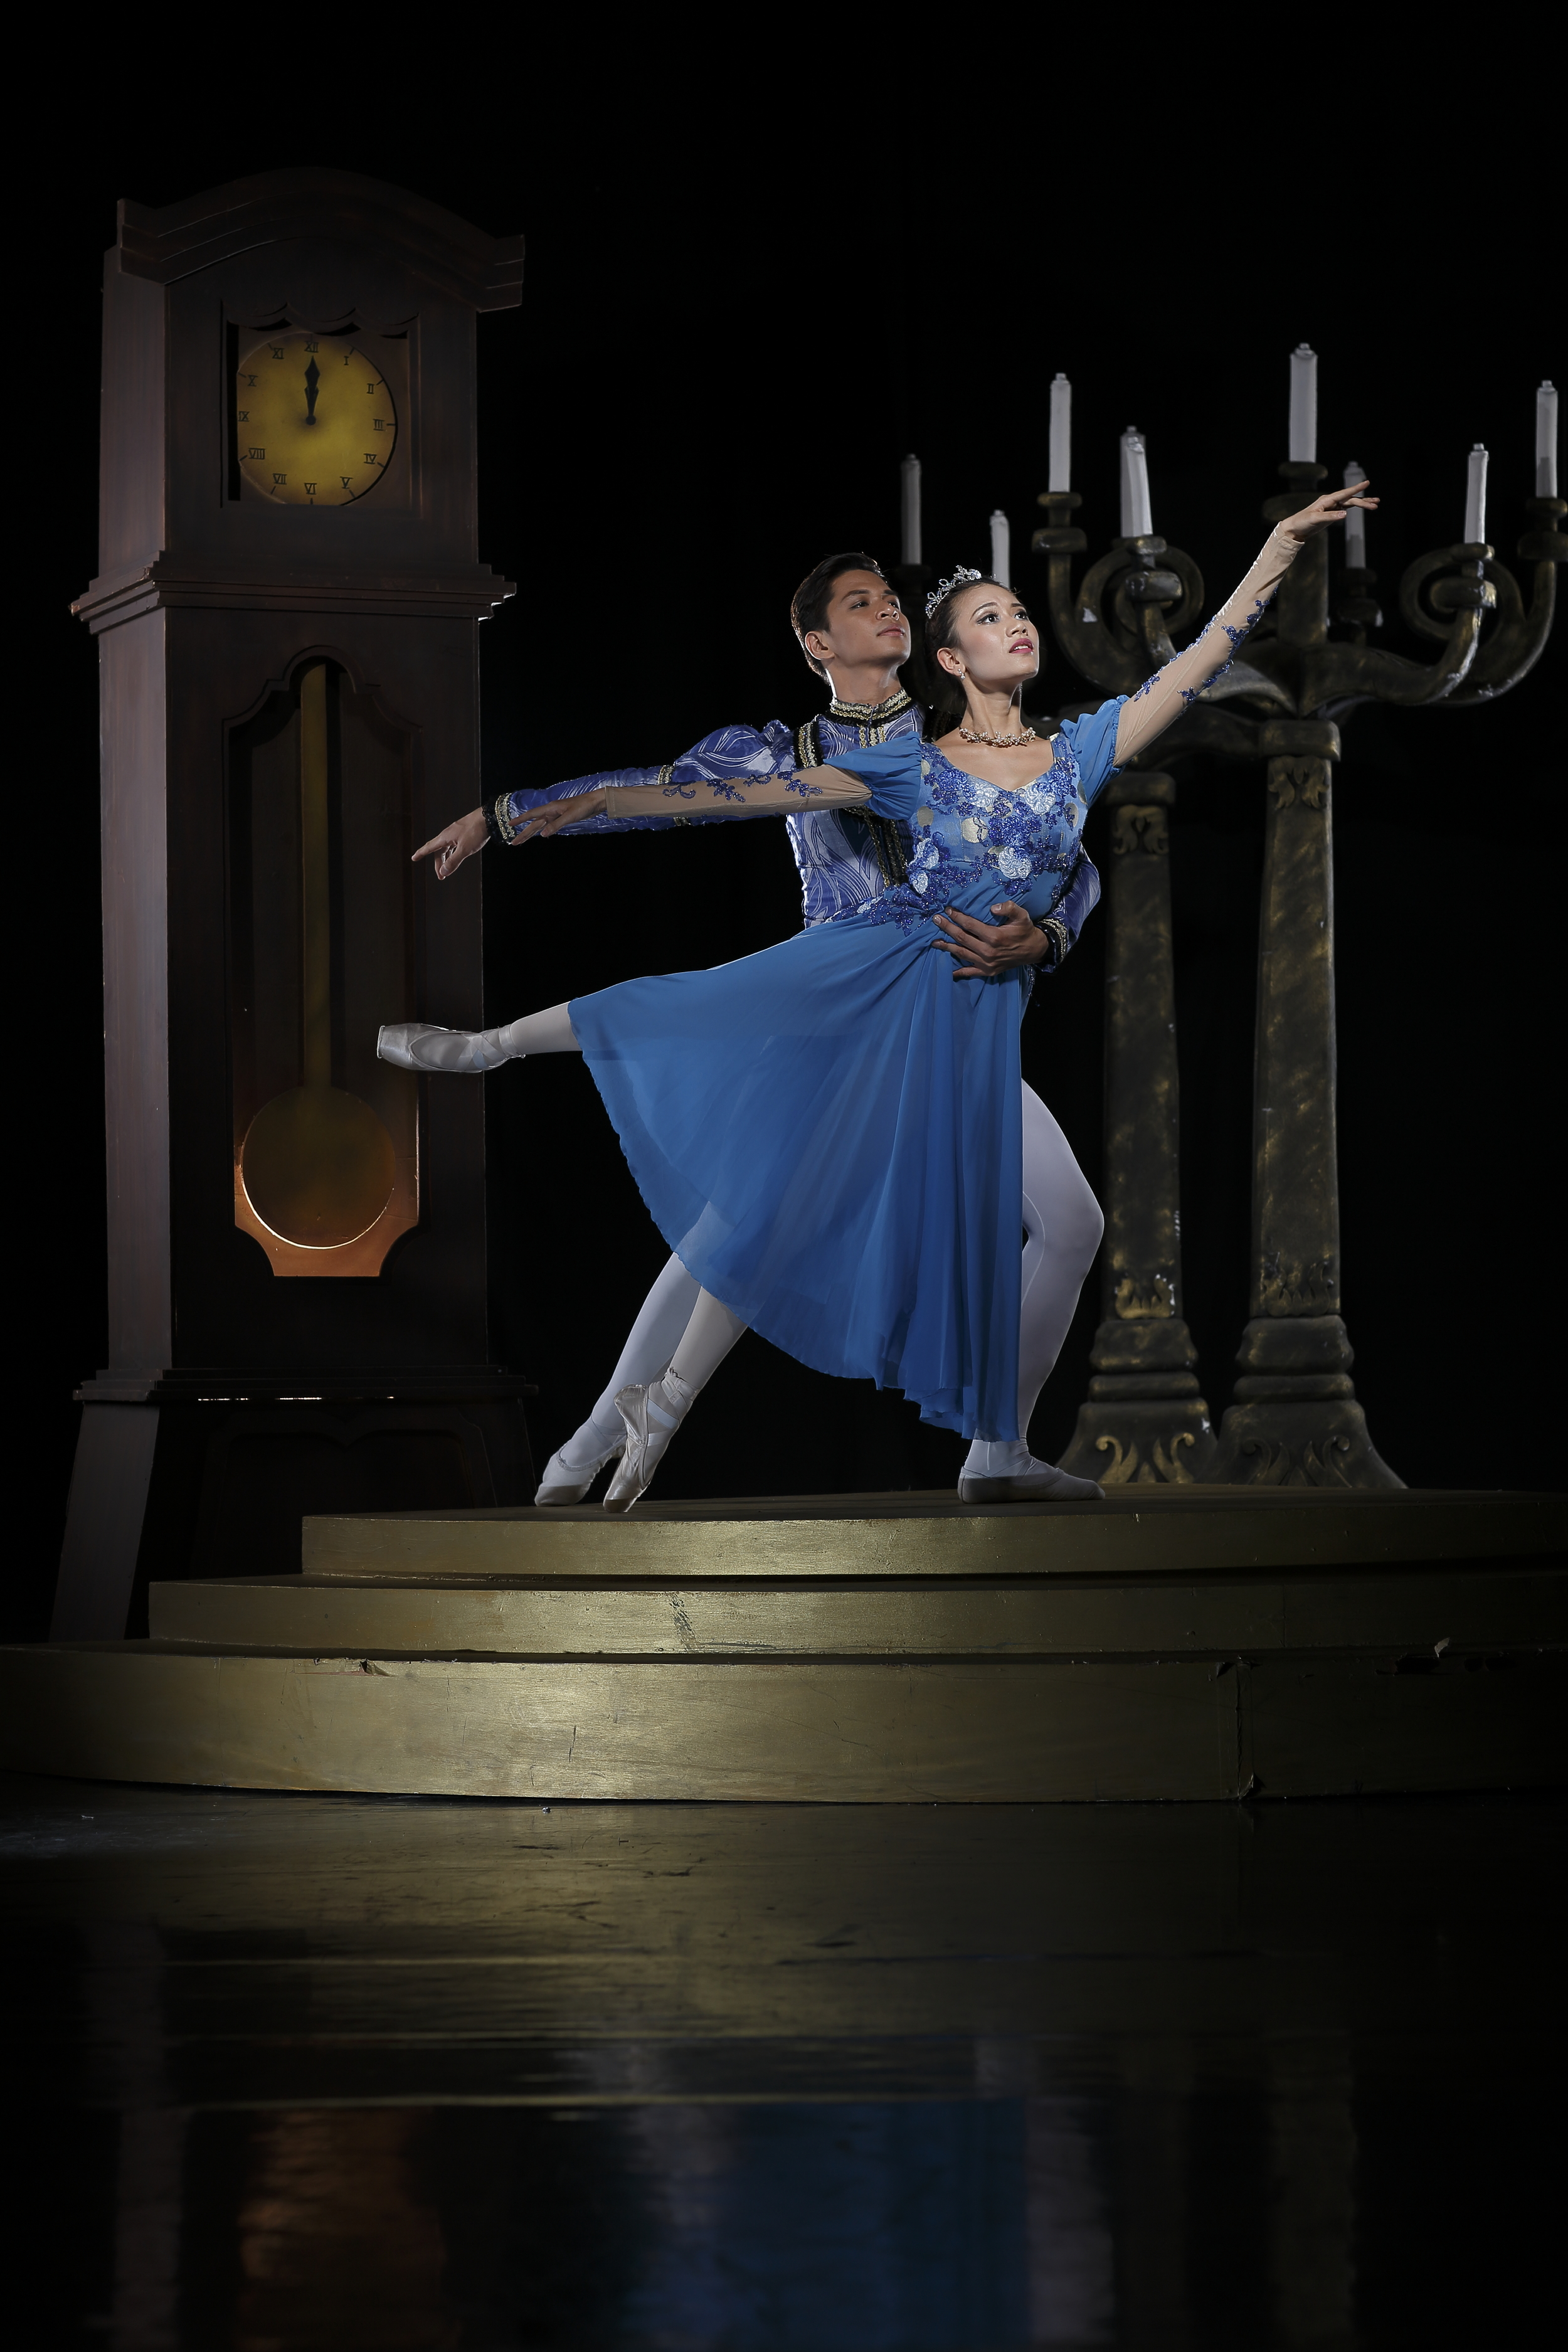 The beloved children's fairy tale,    Cinderella   ,is set to delight ballet fans of all ages during the holiday season. In the lead roles are soloists Abigail Oliveiro and Mark Sumaylo.